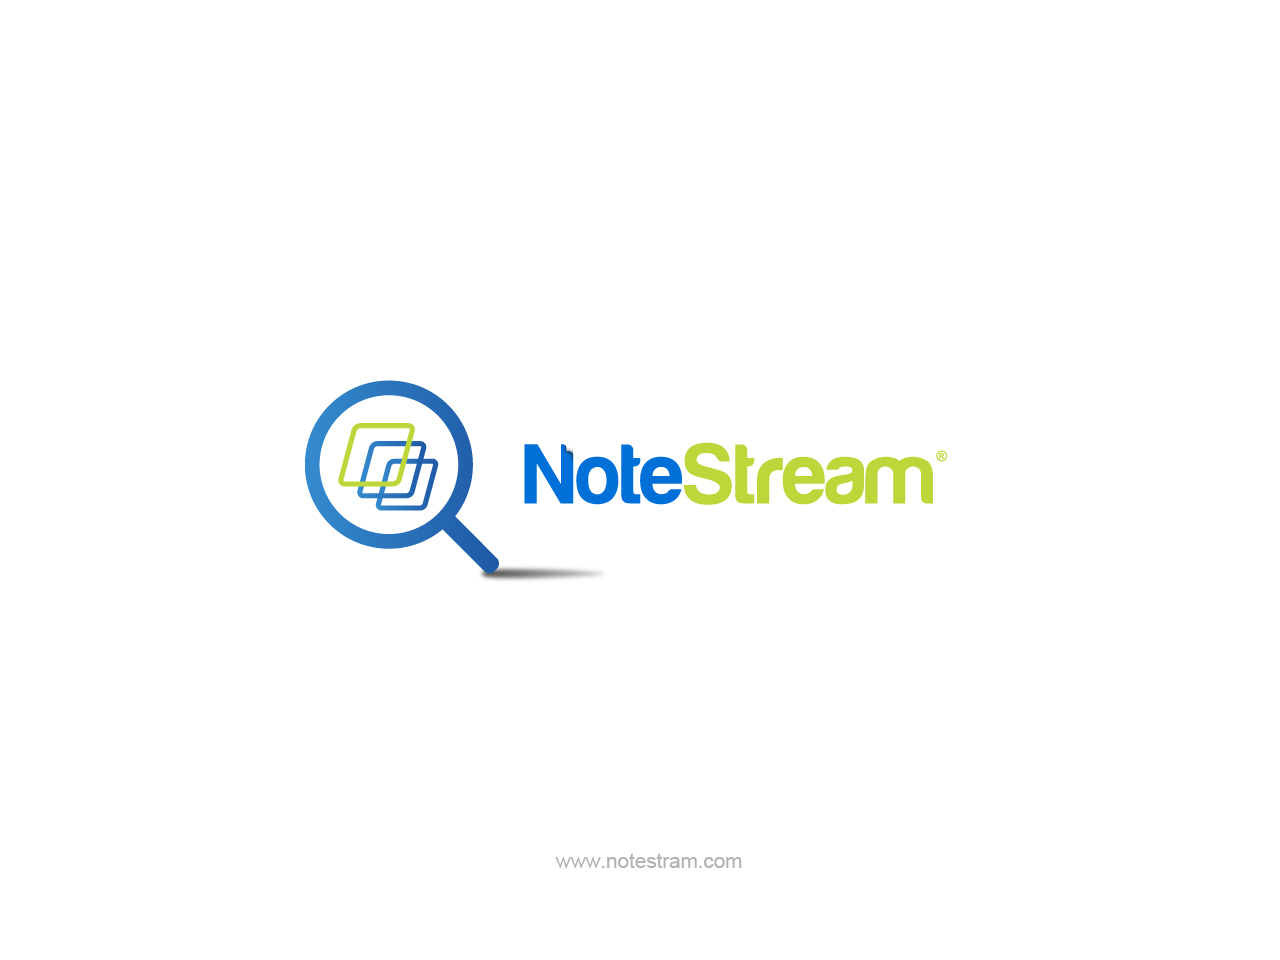 Logo Design by jpbituin - Entry No. 132 in the Logo Design Contest Imaginative Logo Design for NoteStream.